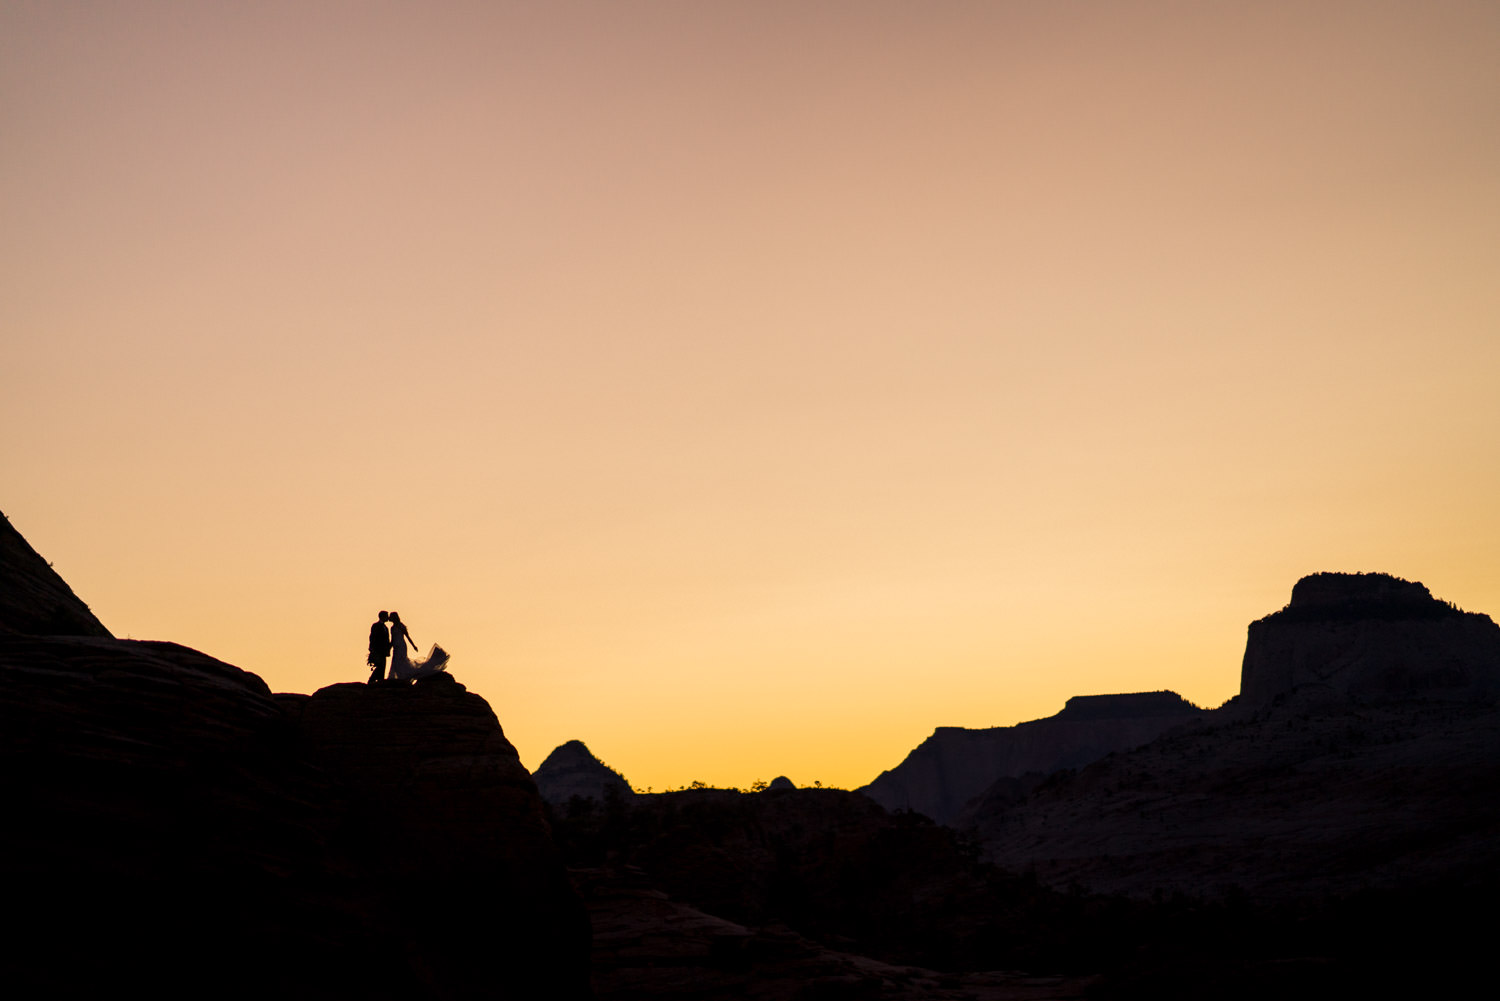 Zion National Park wedding silhouettes at sunset photo